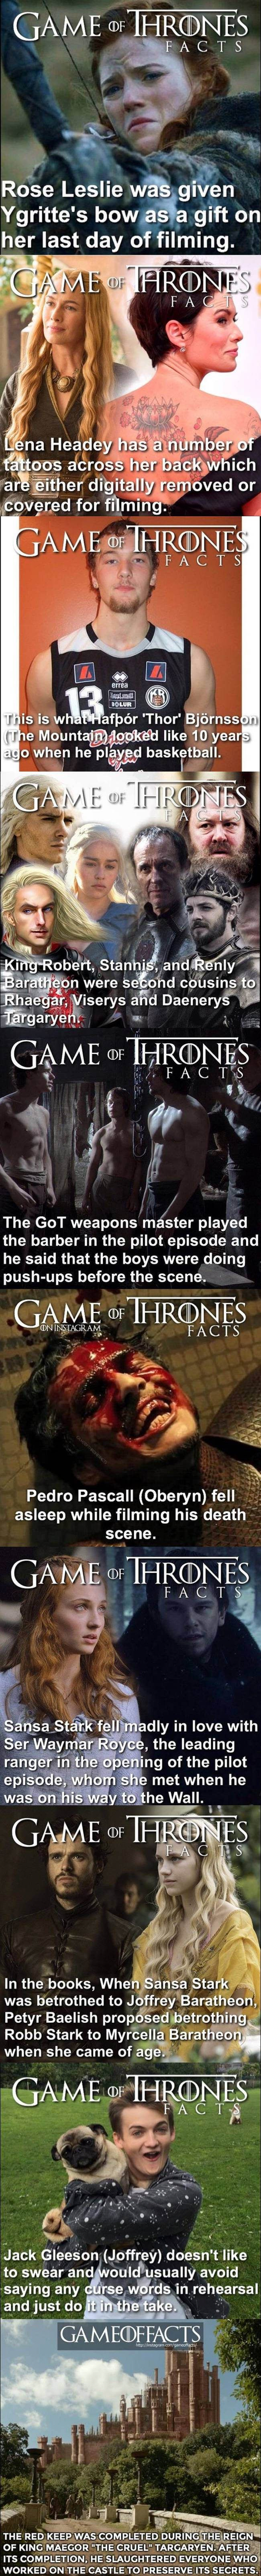 Game of thrones facts part 3